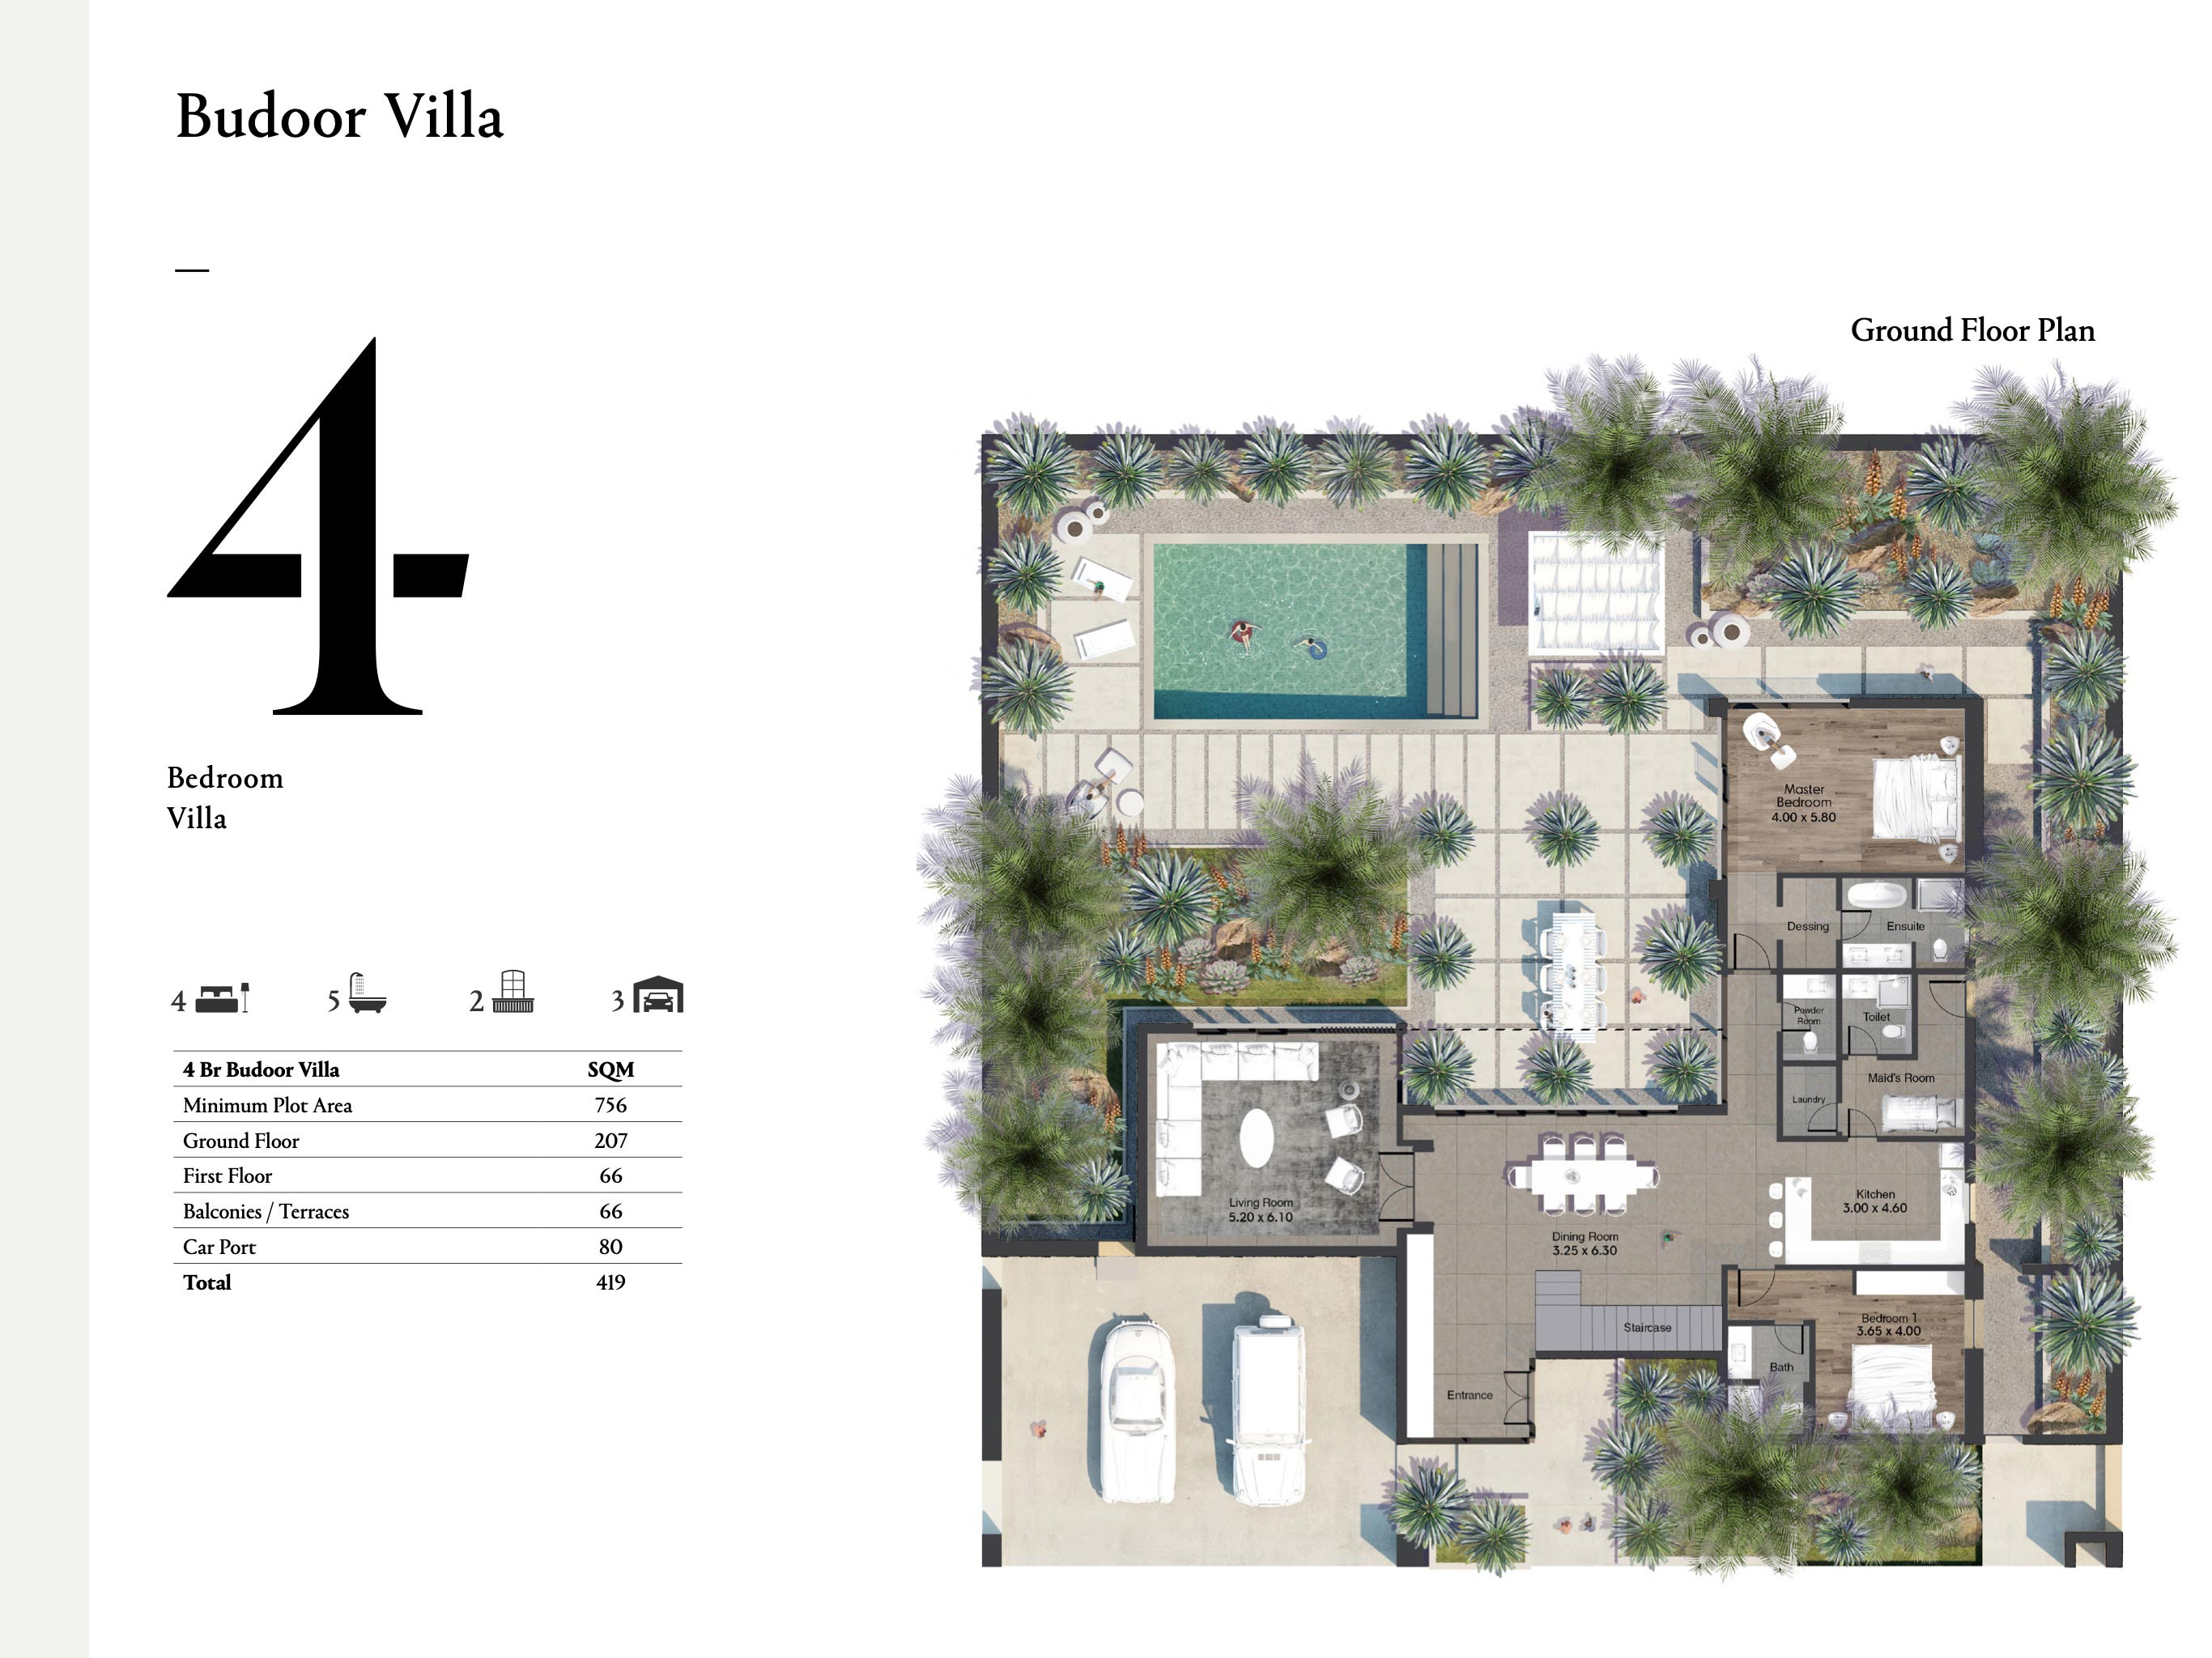 Budoor Villa - 4 Bedroom with a size area of 419 sqm